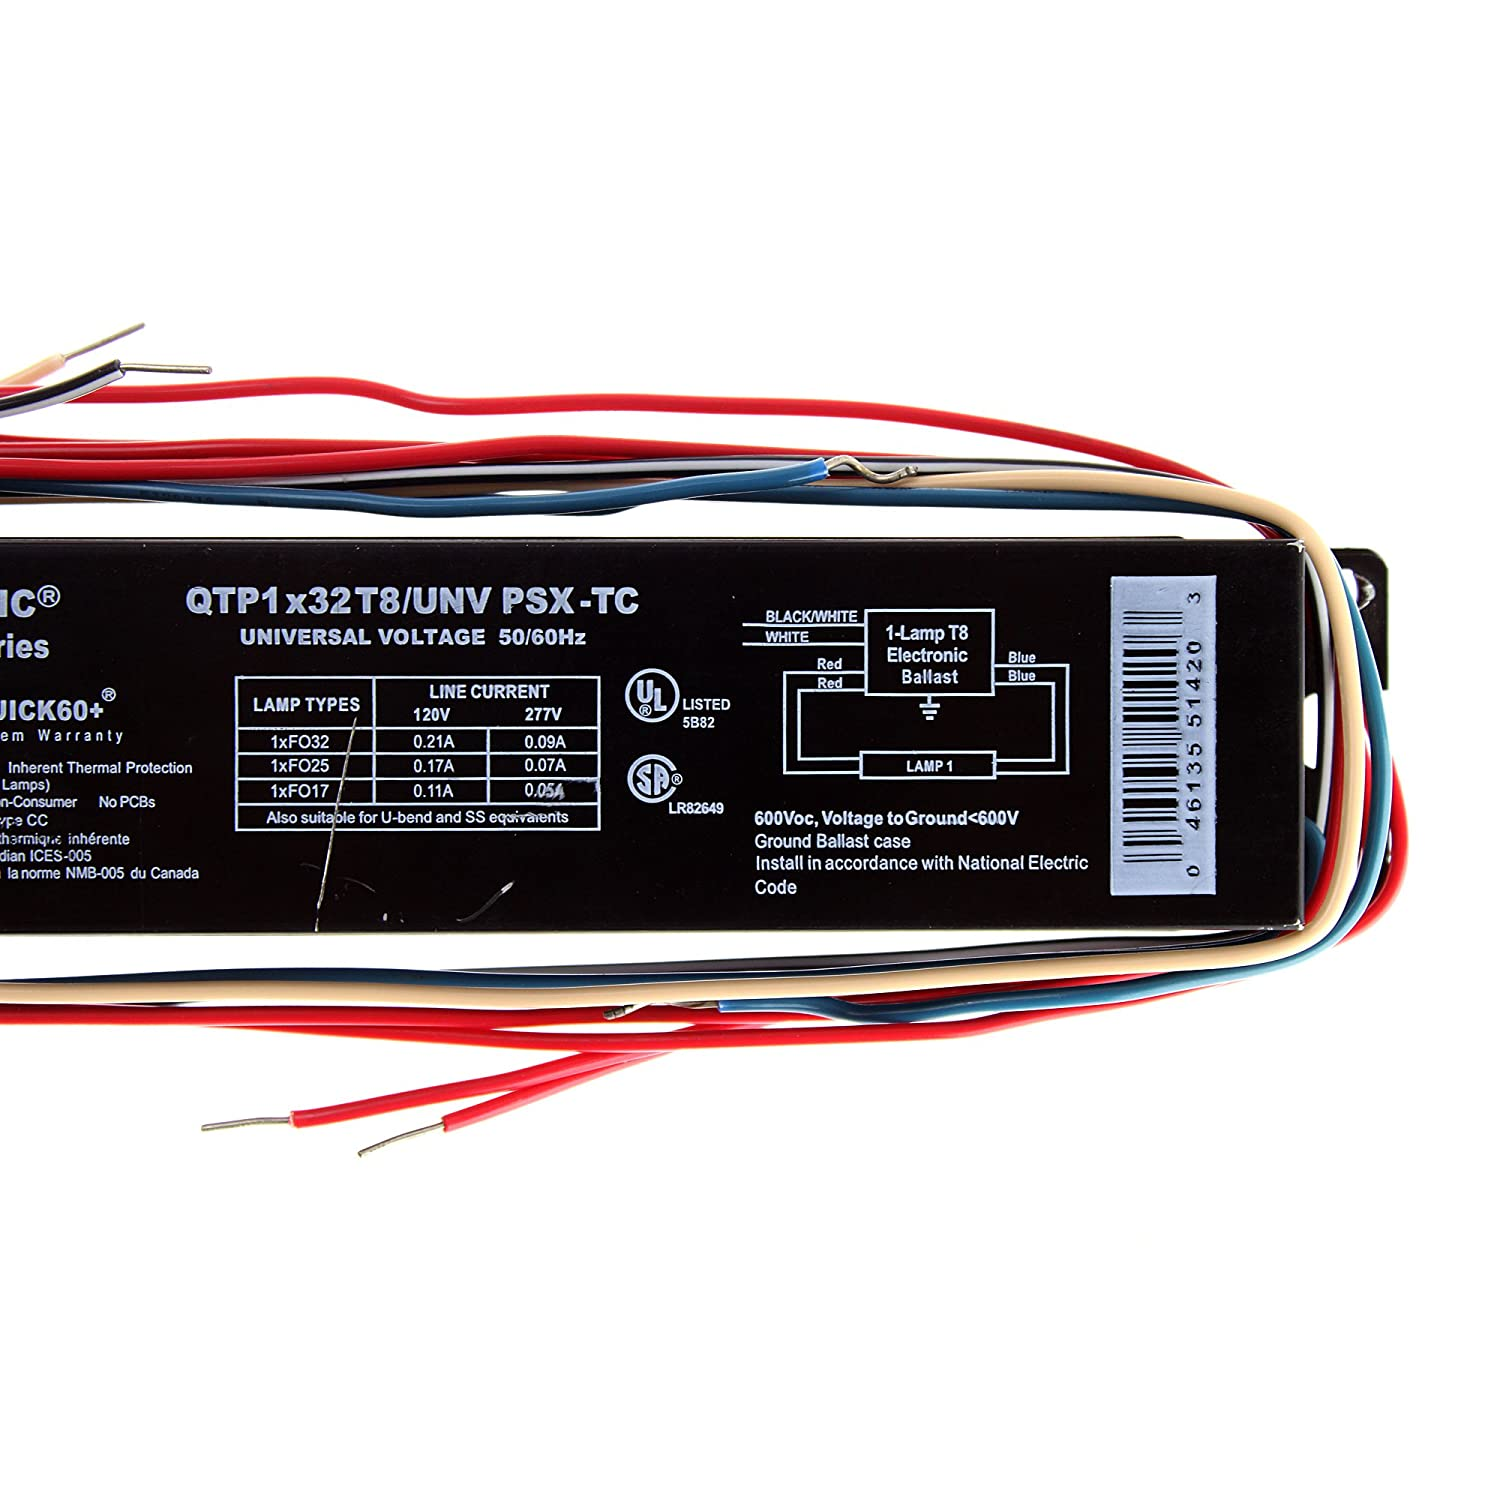 Sylvania Osram Qtp1x32t8 Unv Psx Tc T8 Fluorescent Ballast 1 Lamp Electrical And Electronics For U 120 277v 32w